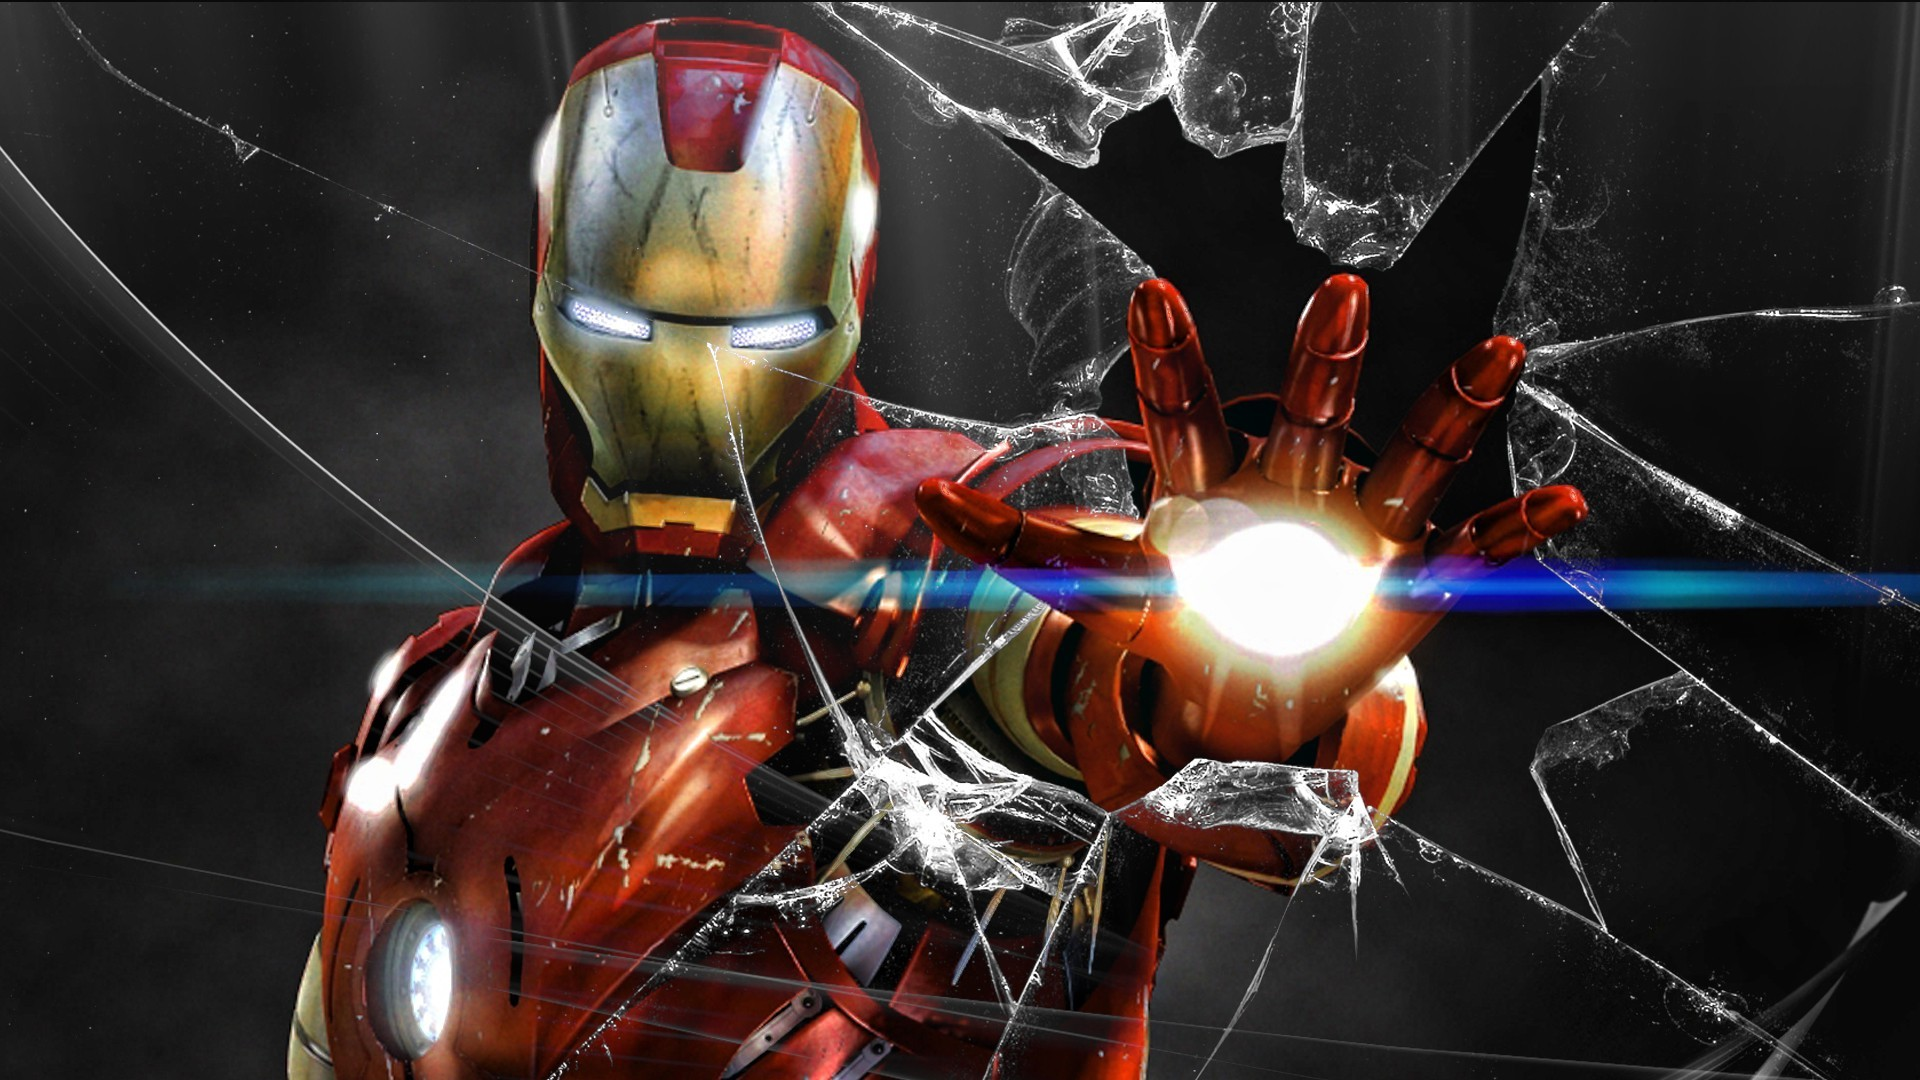 Cars 2 Cartoon Wallpaper Iron Man Broken Screen Wallpaper 52 Images